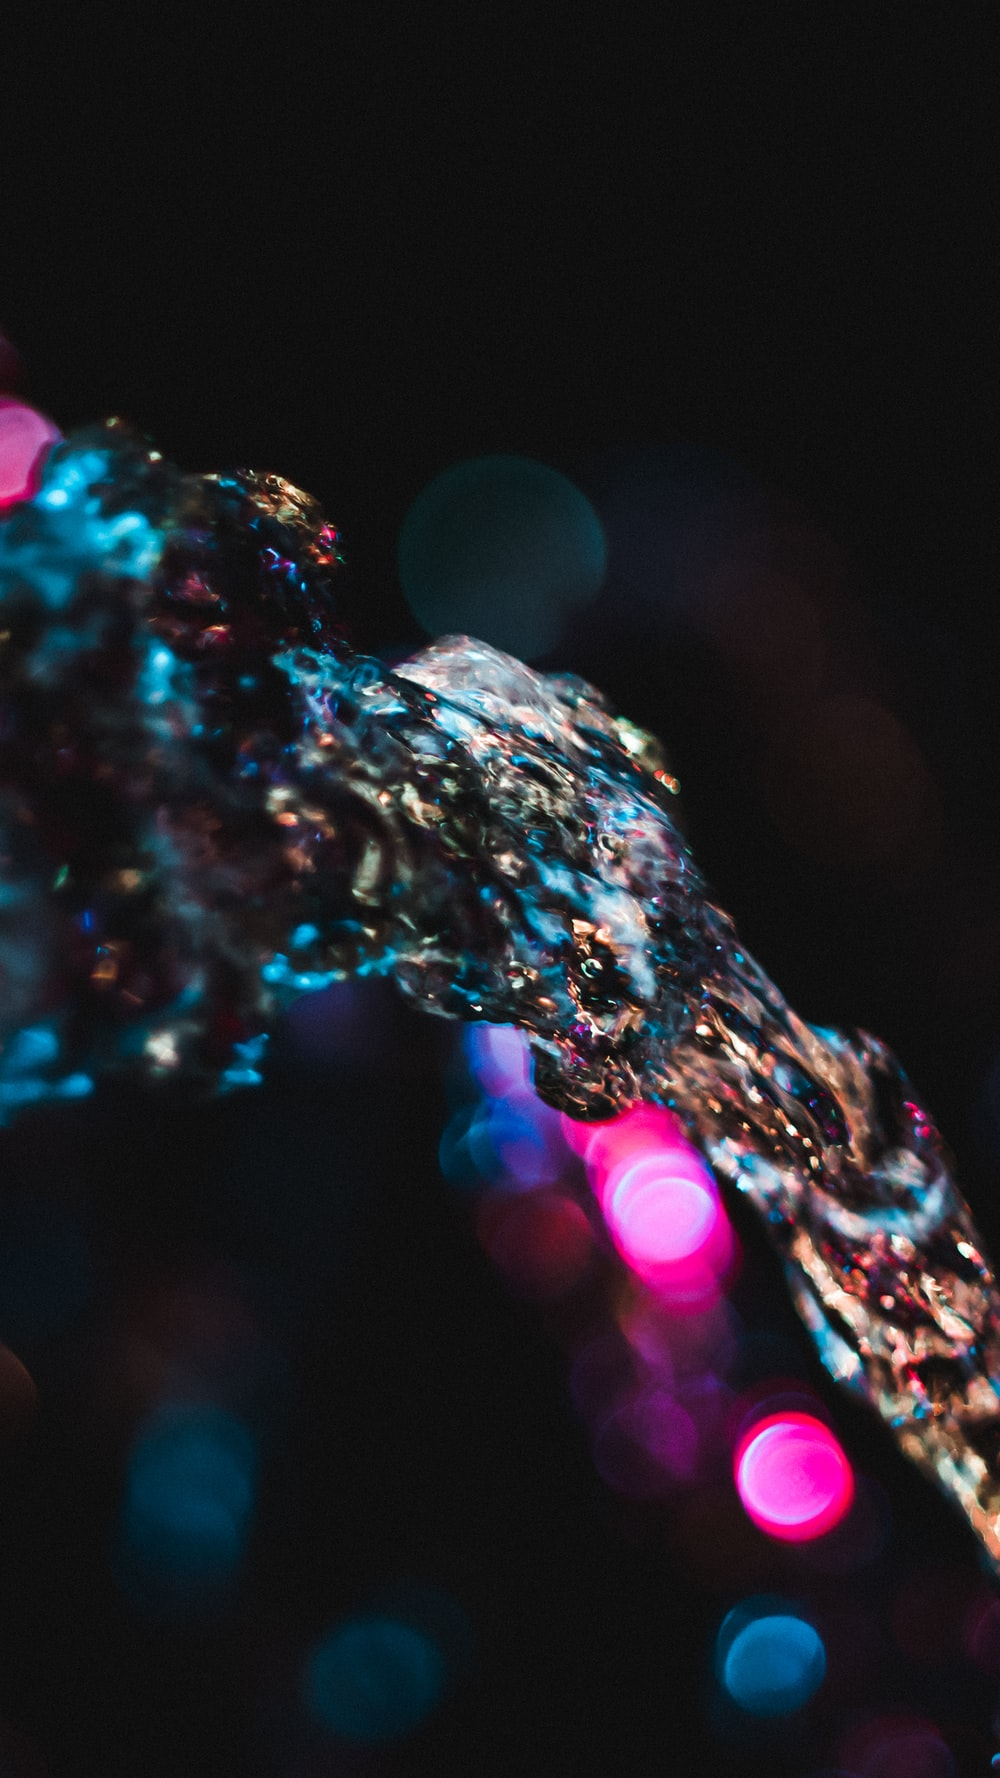 bokeh photography of water